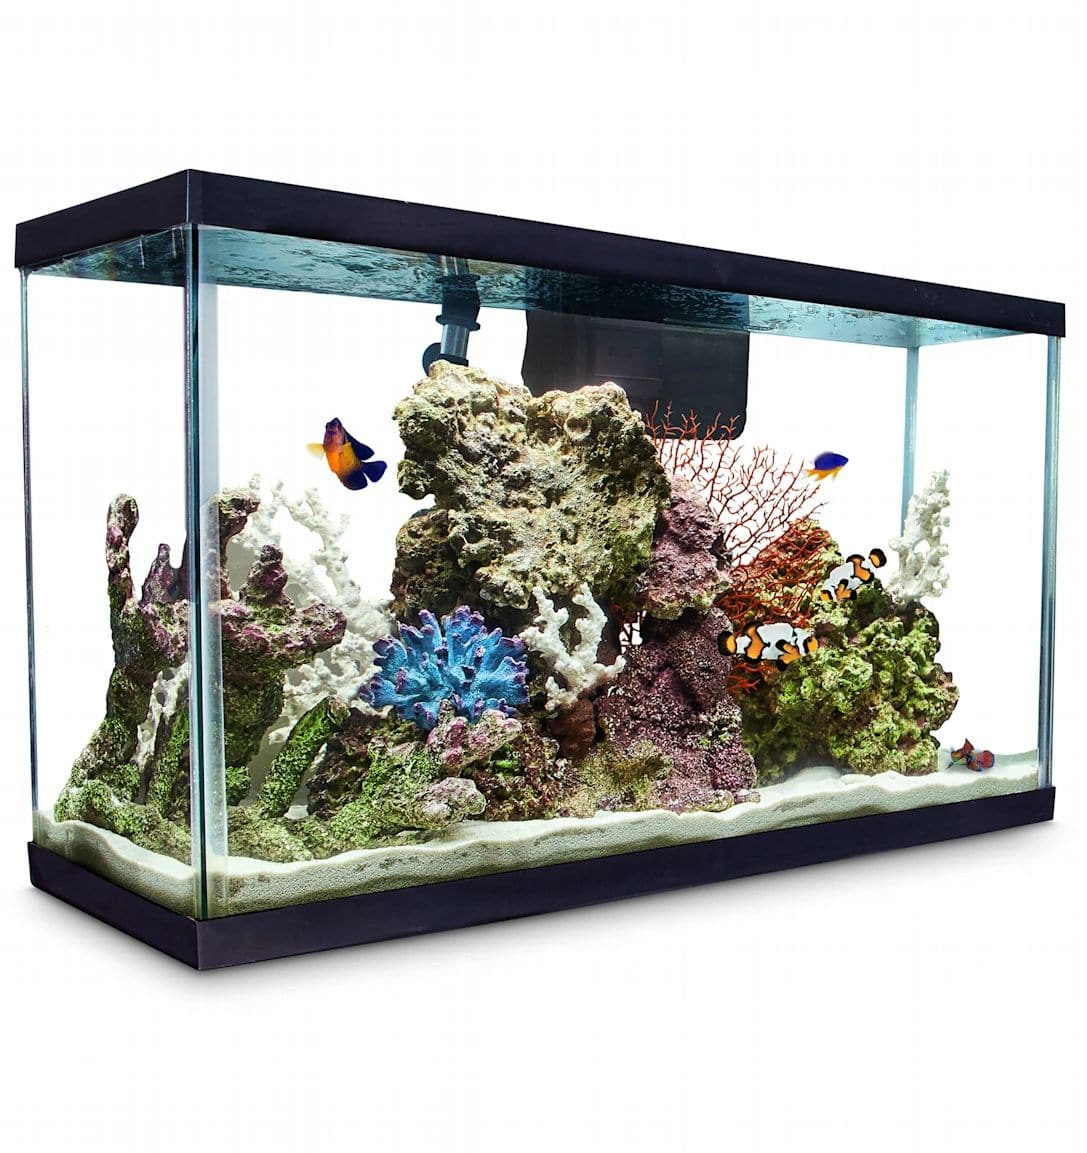 Aqueon Standard Glass Aquarium Tank 29 Gallon $31.49